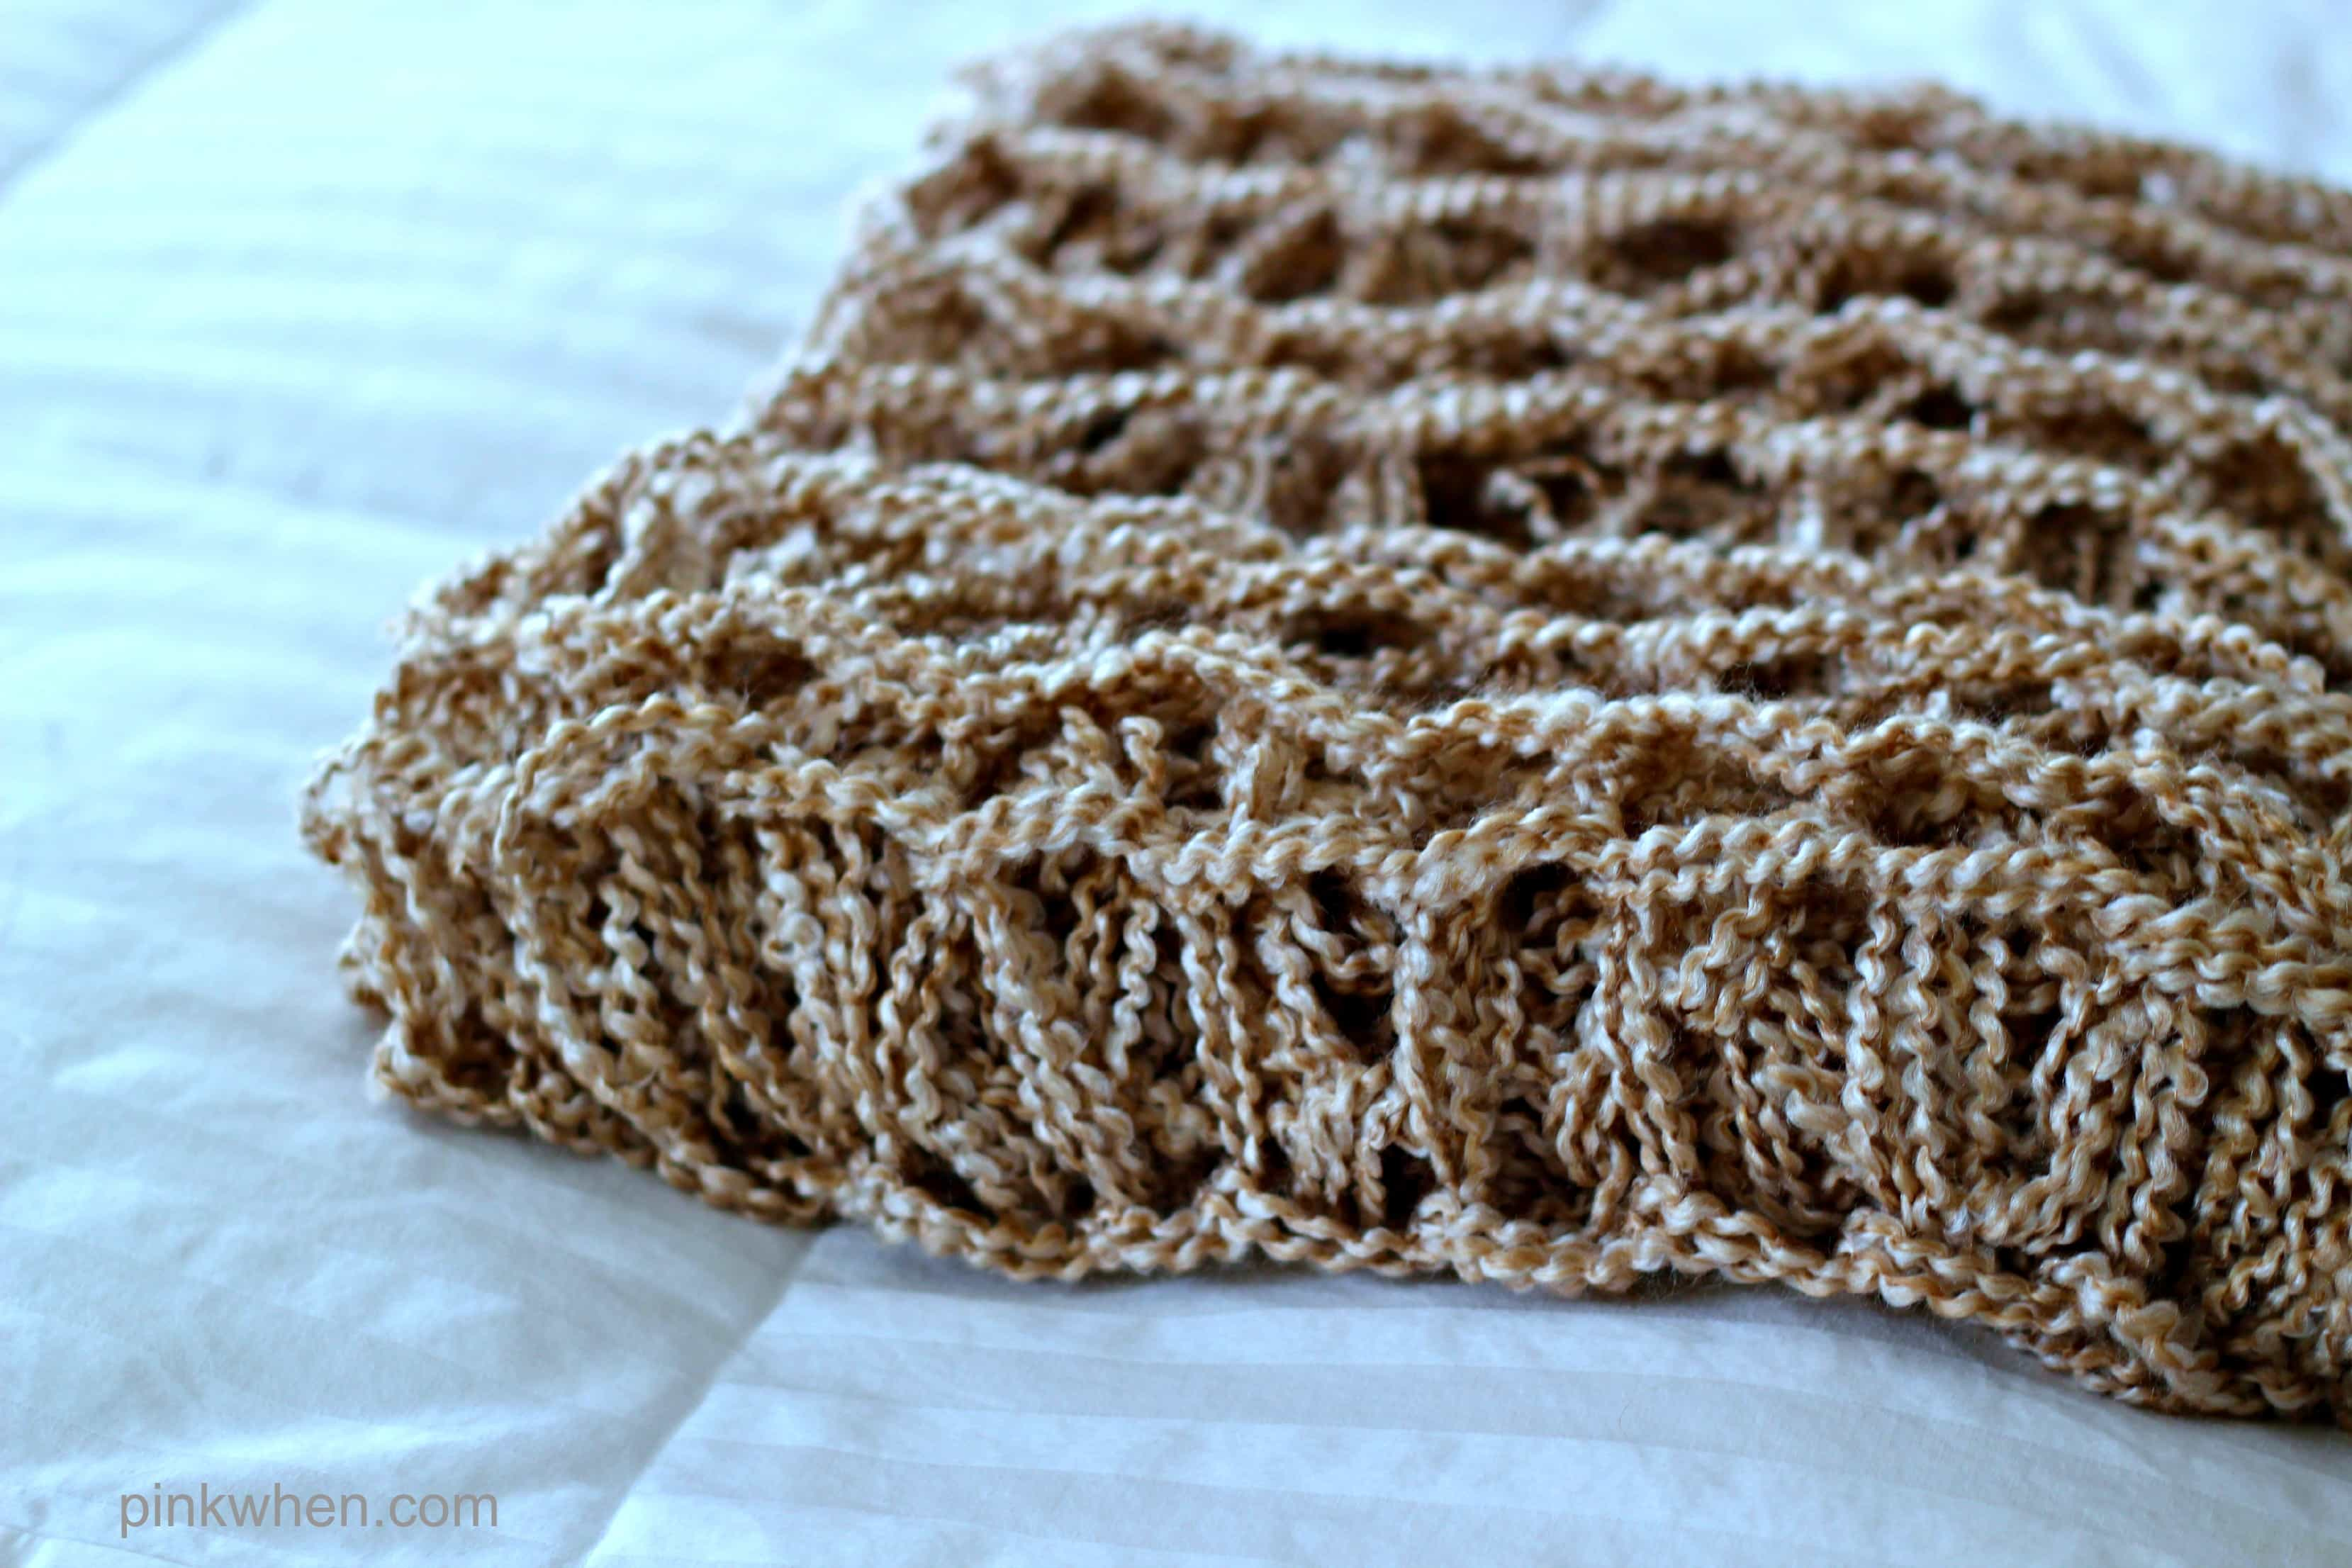 Crochet Knitting Tutorial : have literally become addicted to making things by arm knitting now ...